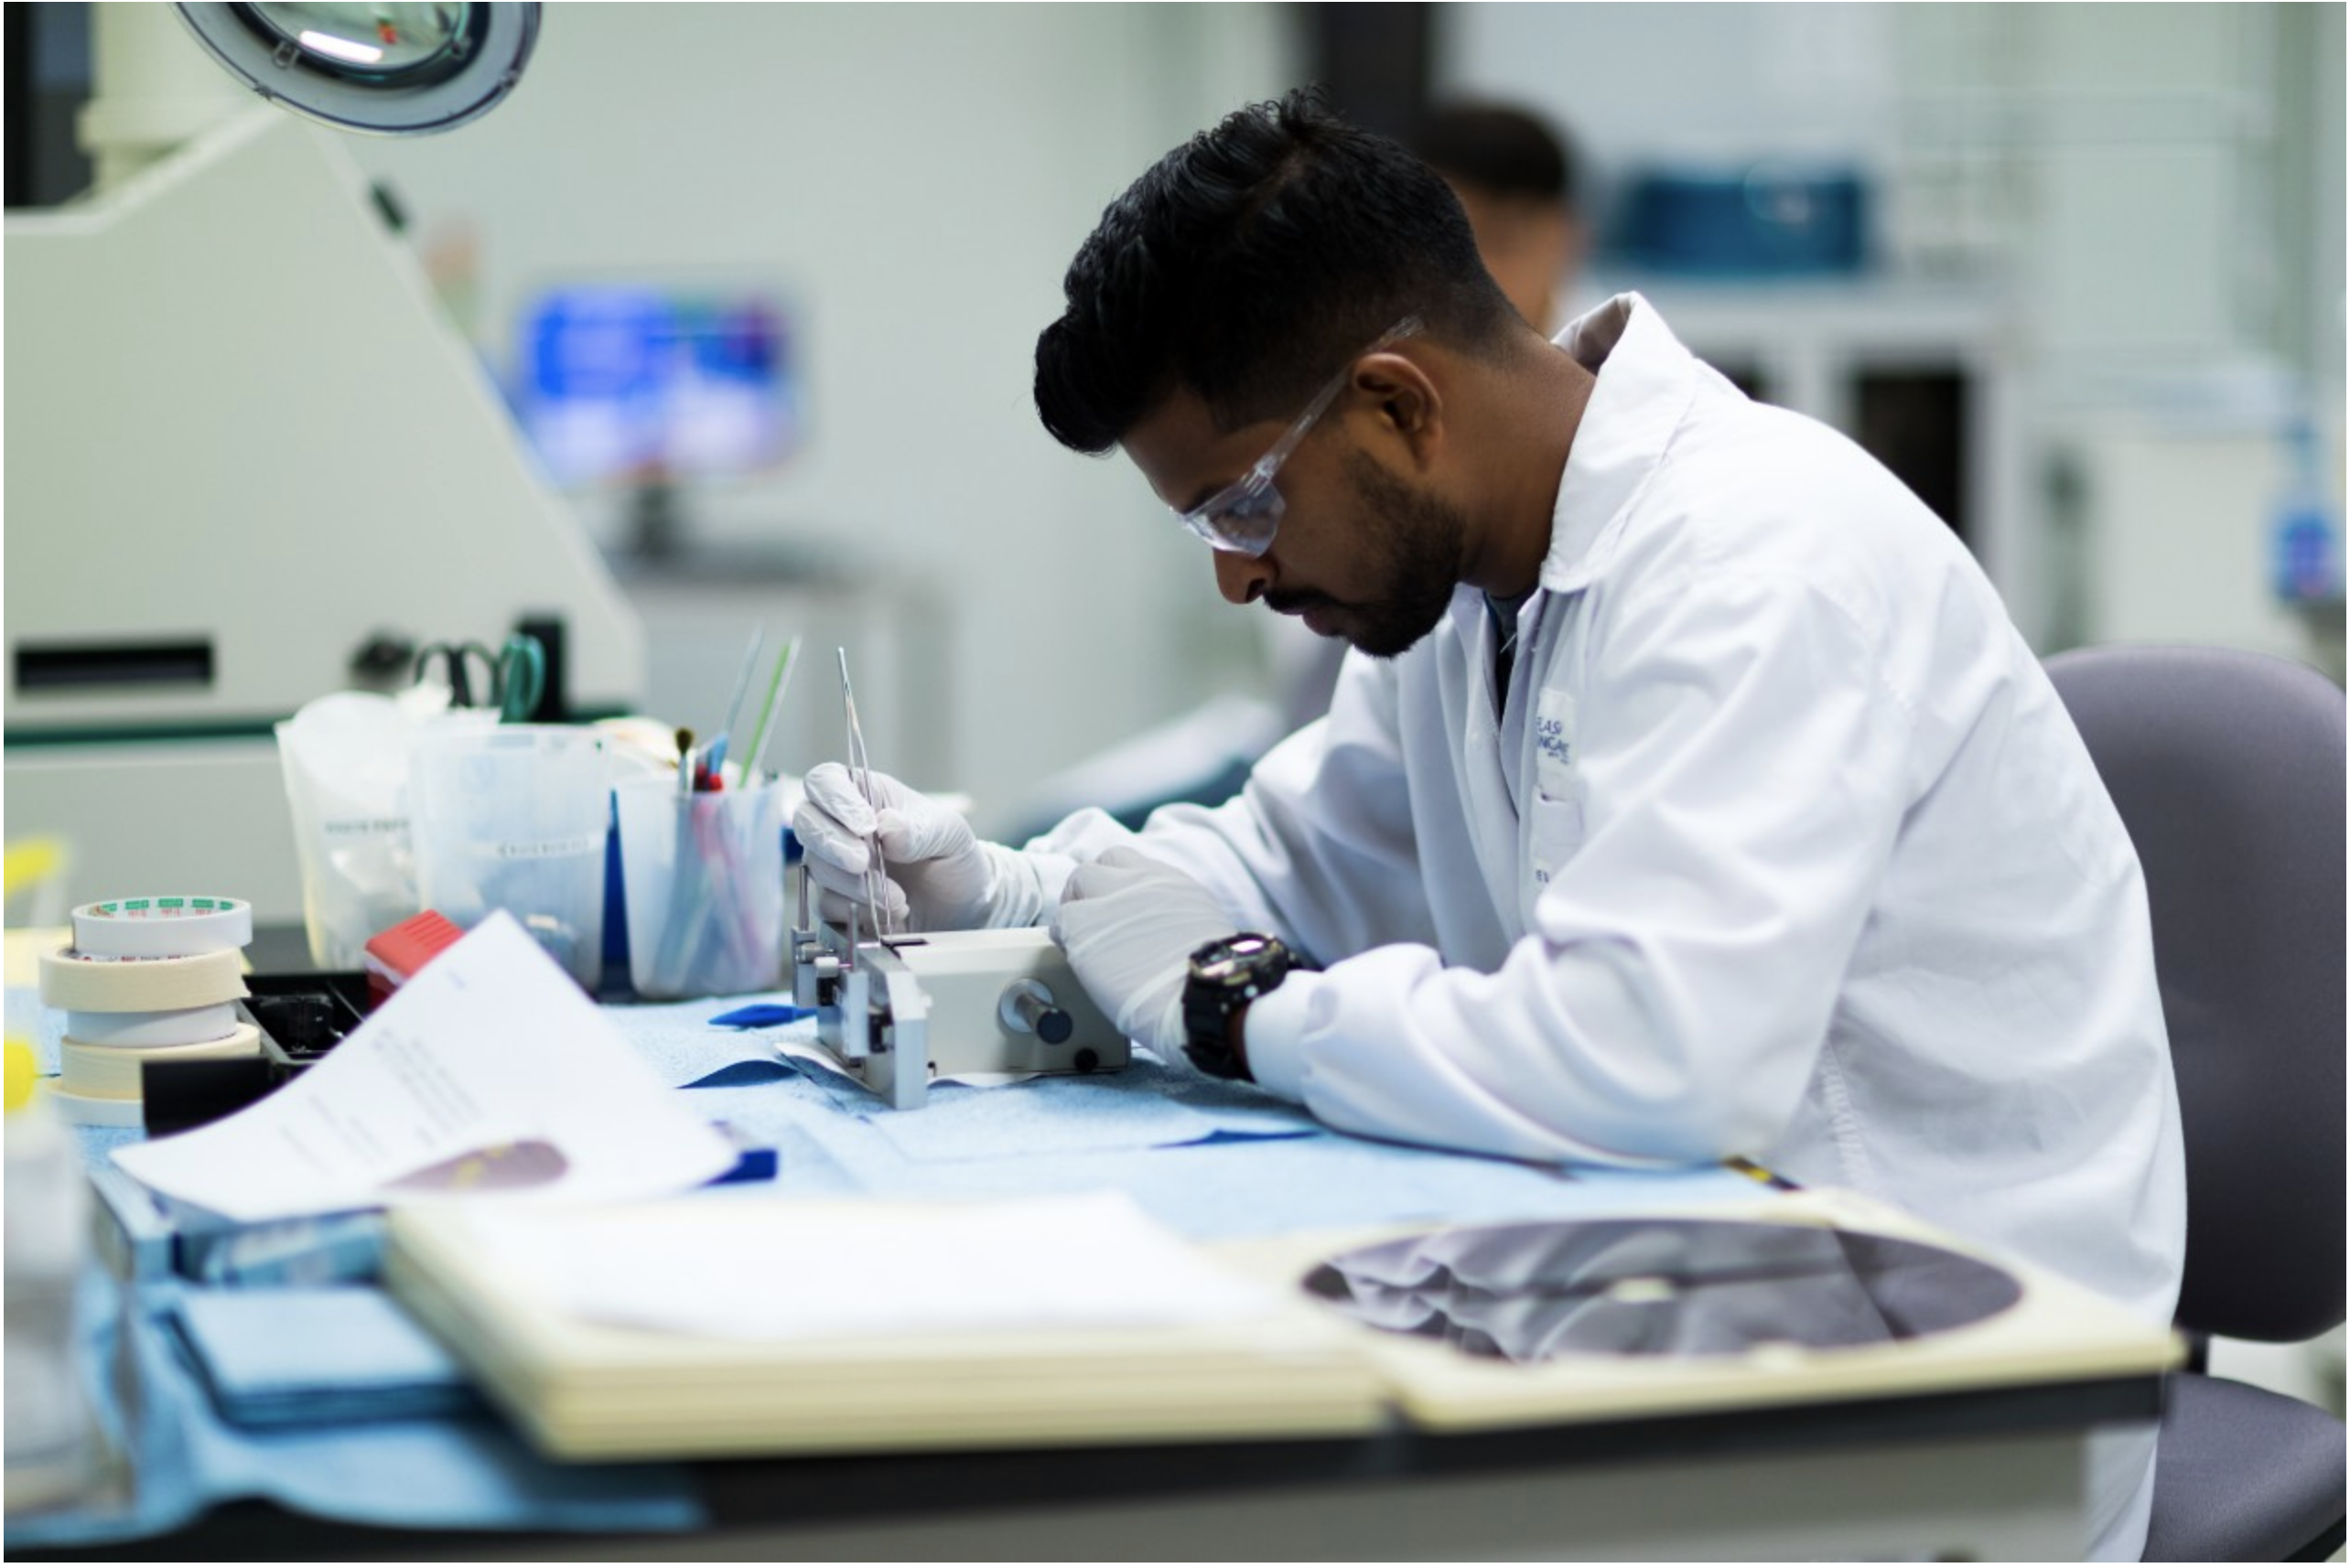 Image of male scientist working on a report in a lab